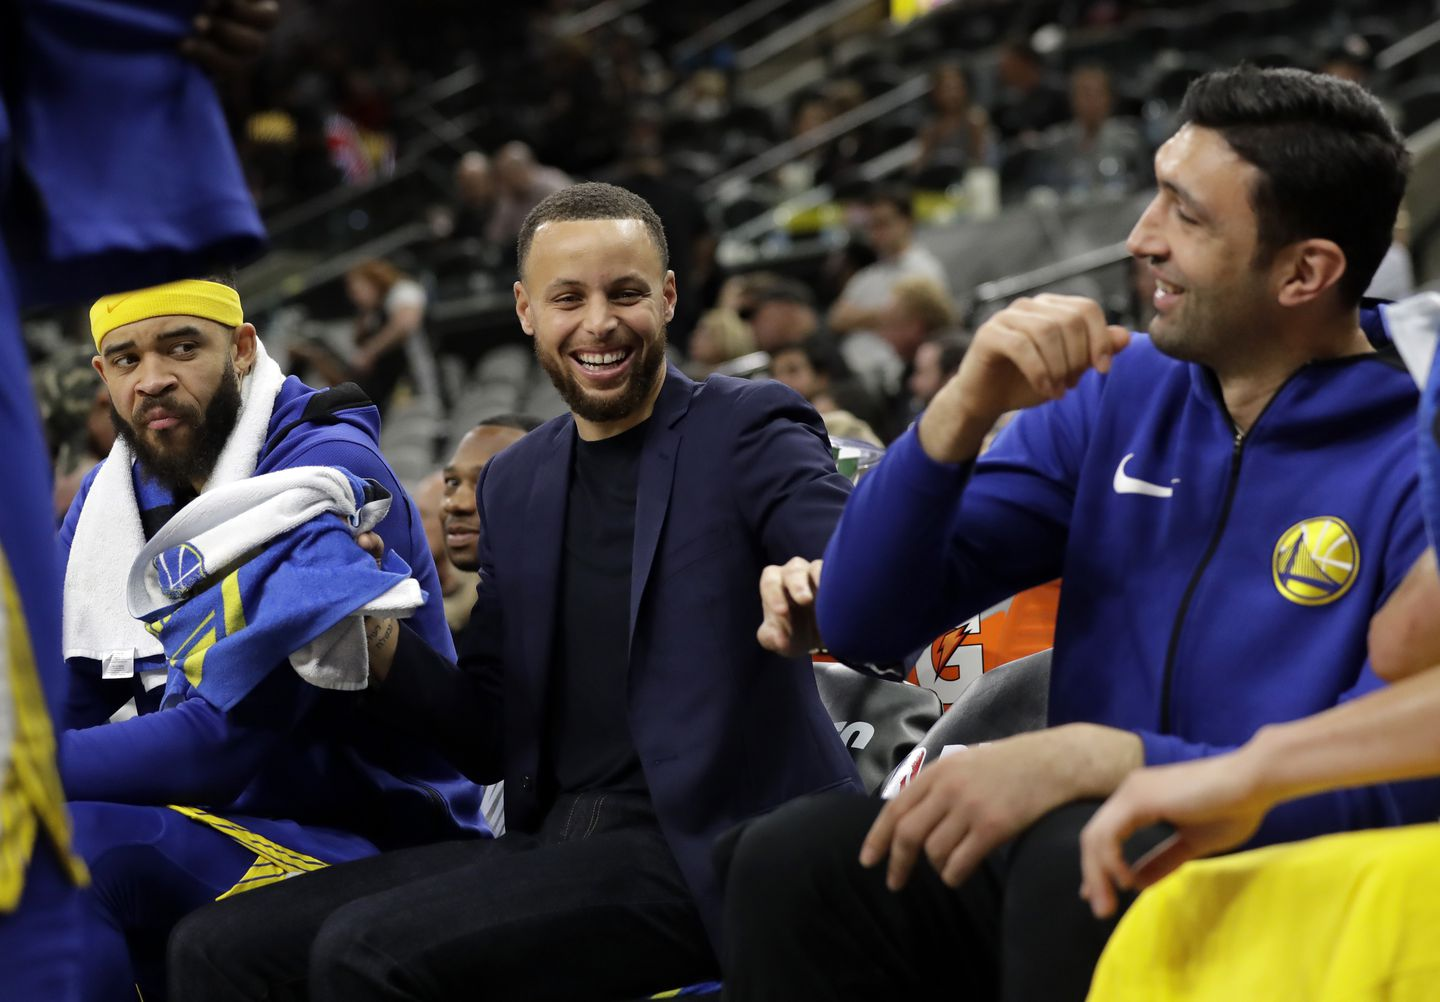 ef99a5c22b92 Golden State Warriors  JaVale McGee watches as Stephen Curry (center) jokes  with Zaza